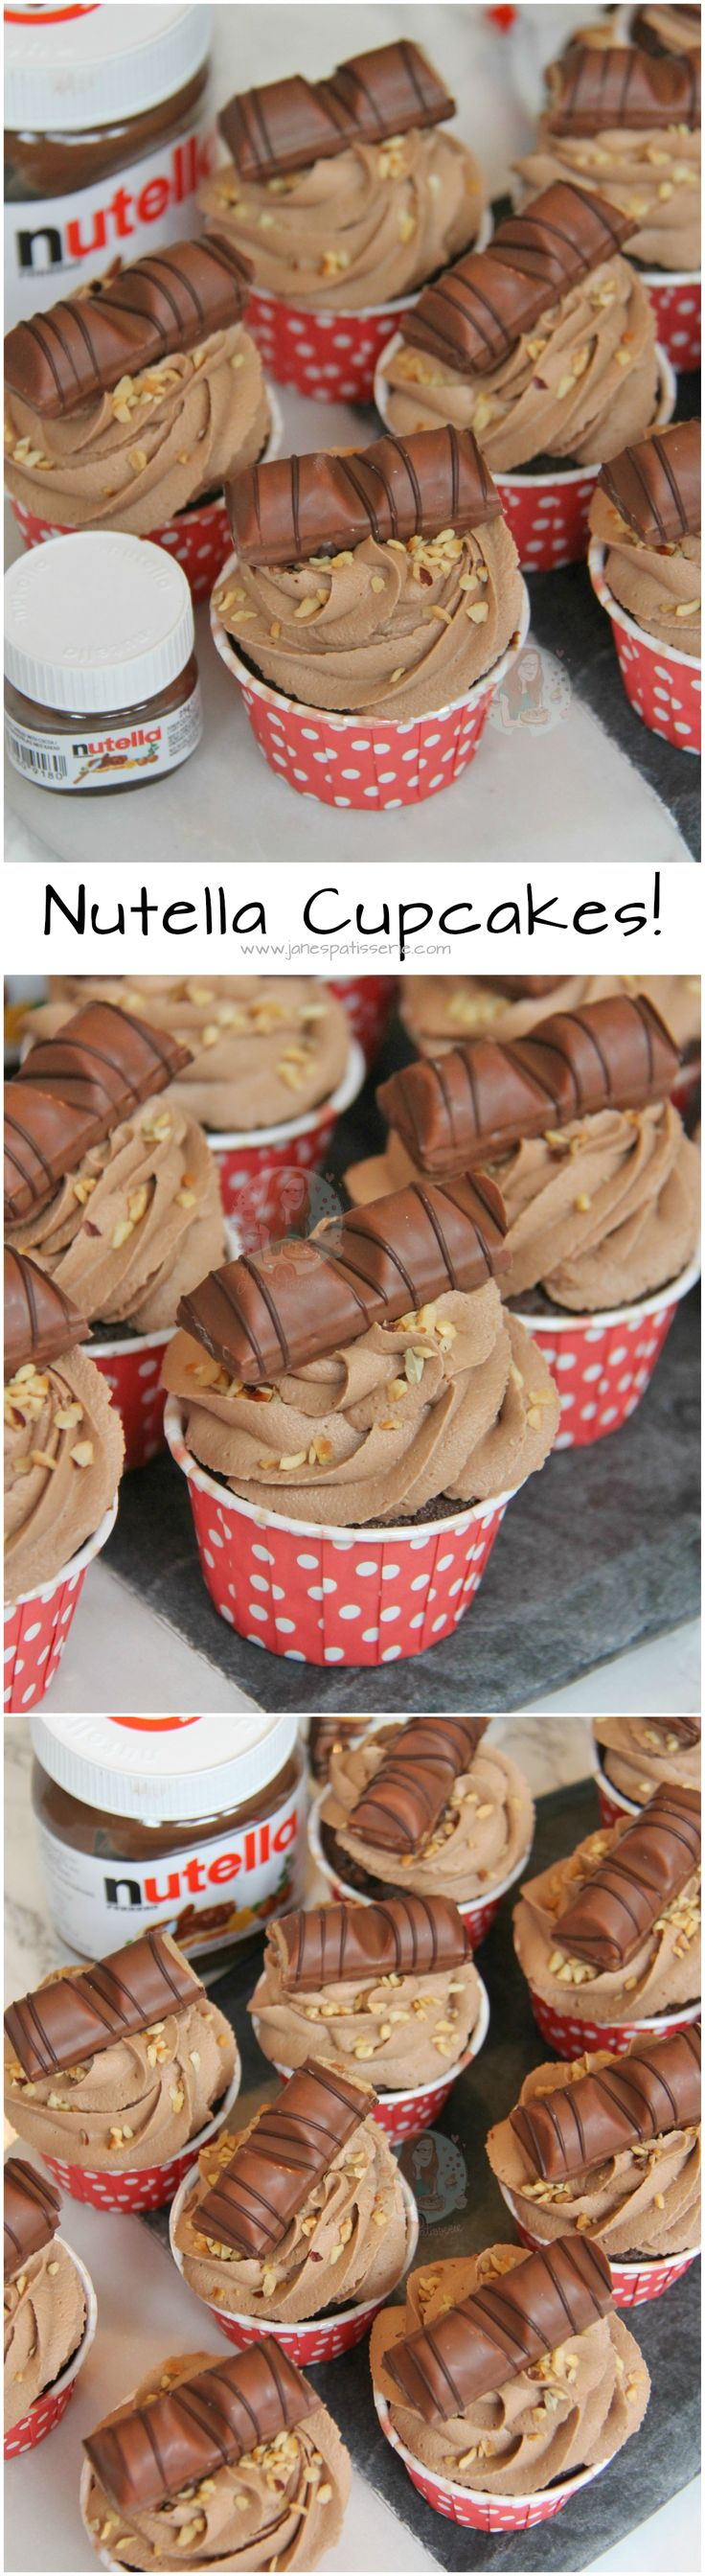 Nutella Cupcakes! ❤️ Chocolatey Cupcake dotted with Hazelnuts, topped with a Creamy & Delicious Nutella Buttercream Frosting with Kinder Bueno… Amazing Nutella Cupcakes!